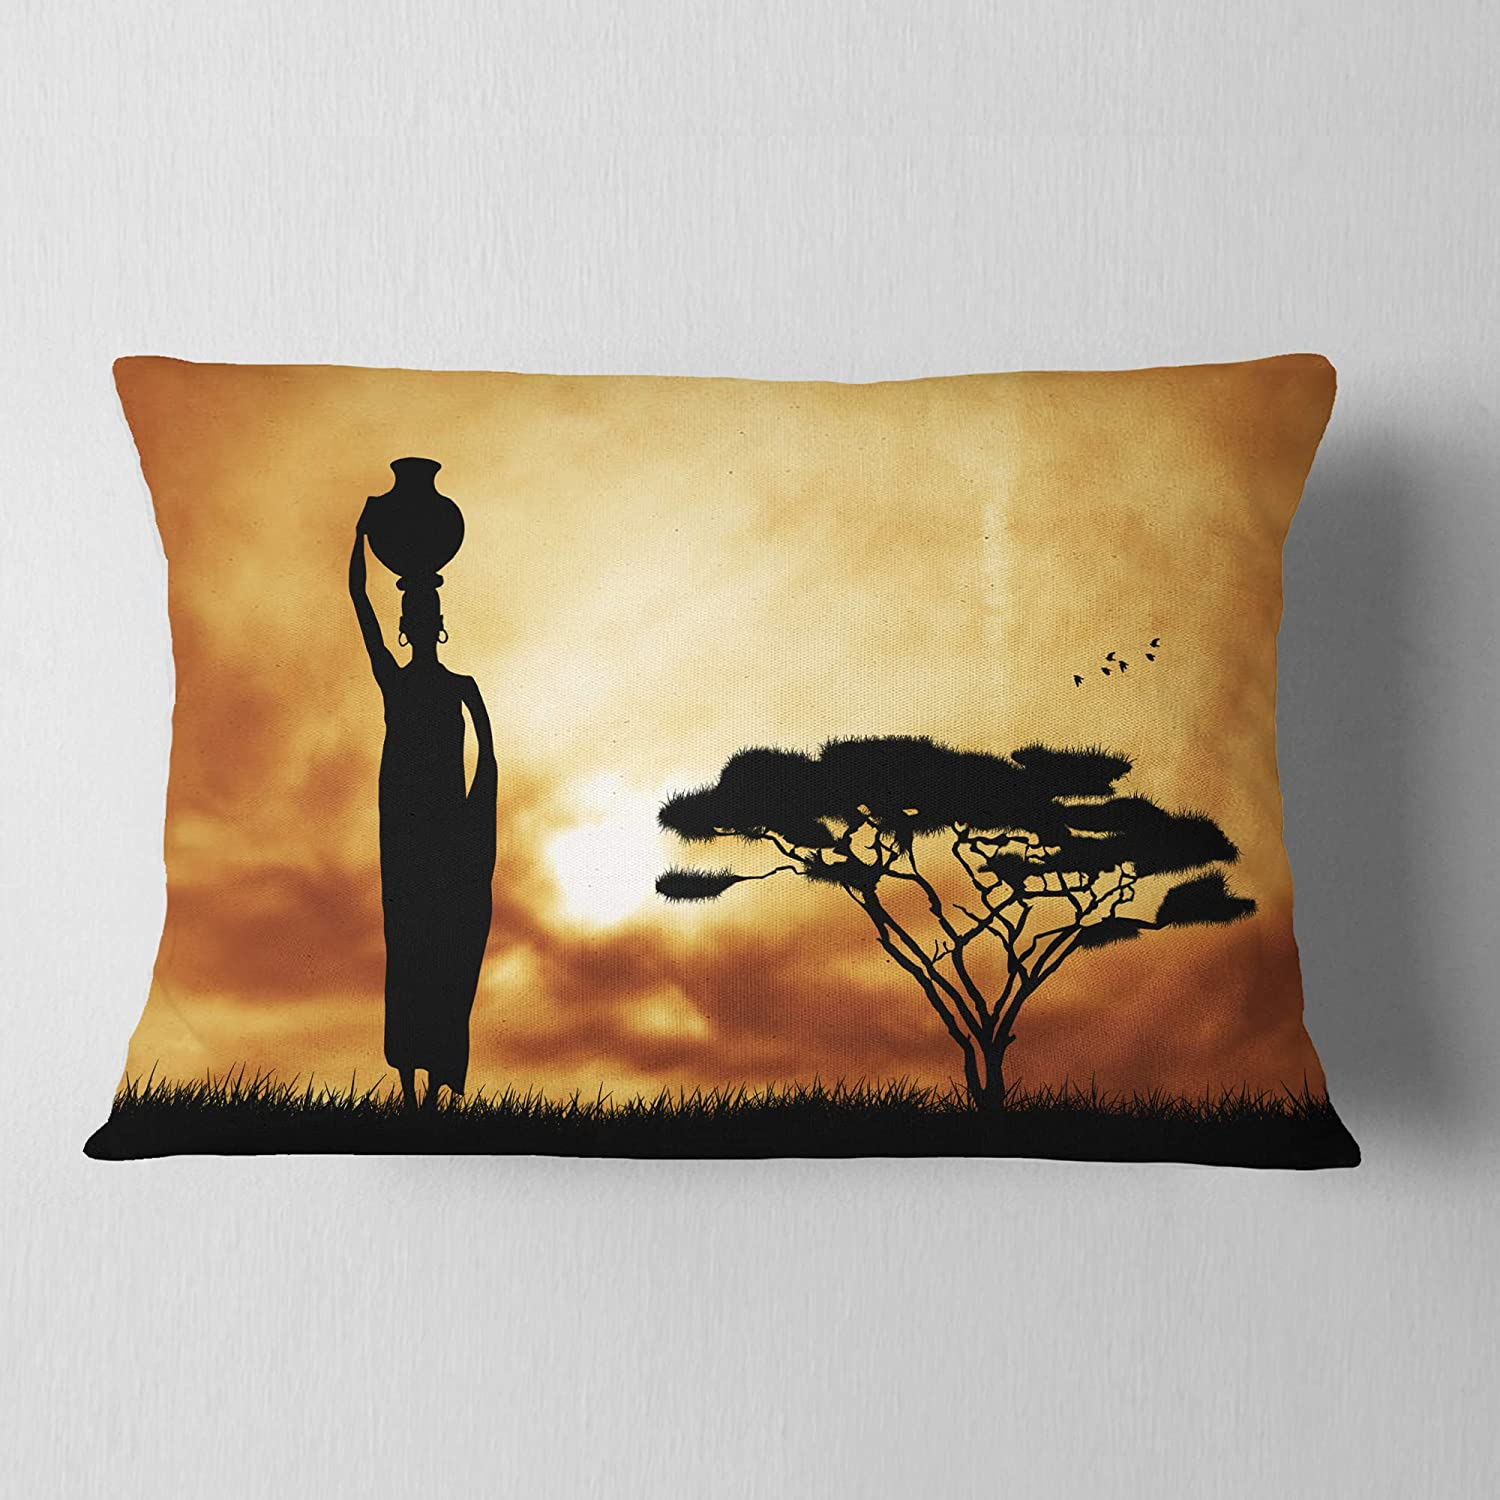 Insert Side Designart CU12979-12-20 Woman and Lonely Tree African Landscape Printed Lumbar Cushion Cover for Living Room in x 20 in Sofa Throw Pillow 12 in